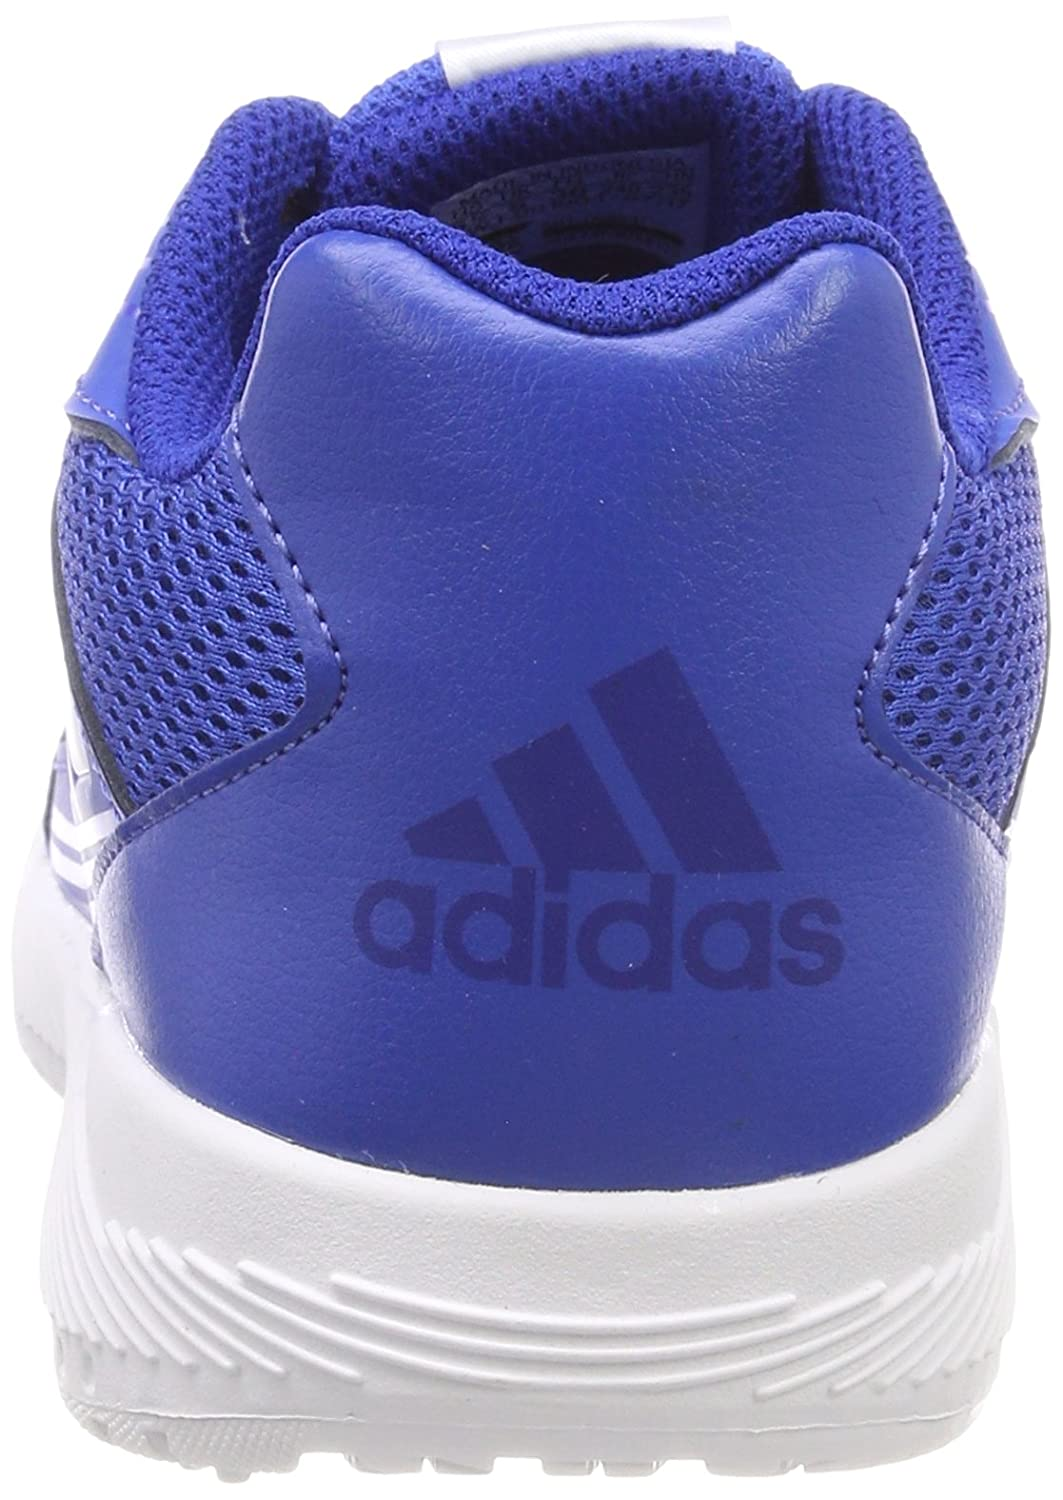 adidas Kids Youth Boys Shoes Altarun Training Sporty Running Trainers CQ0037 New